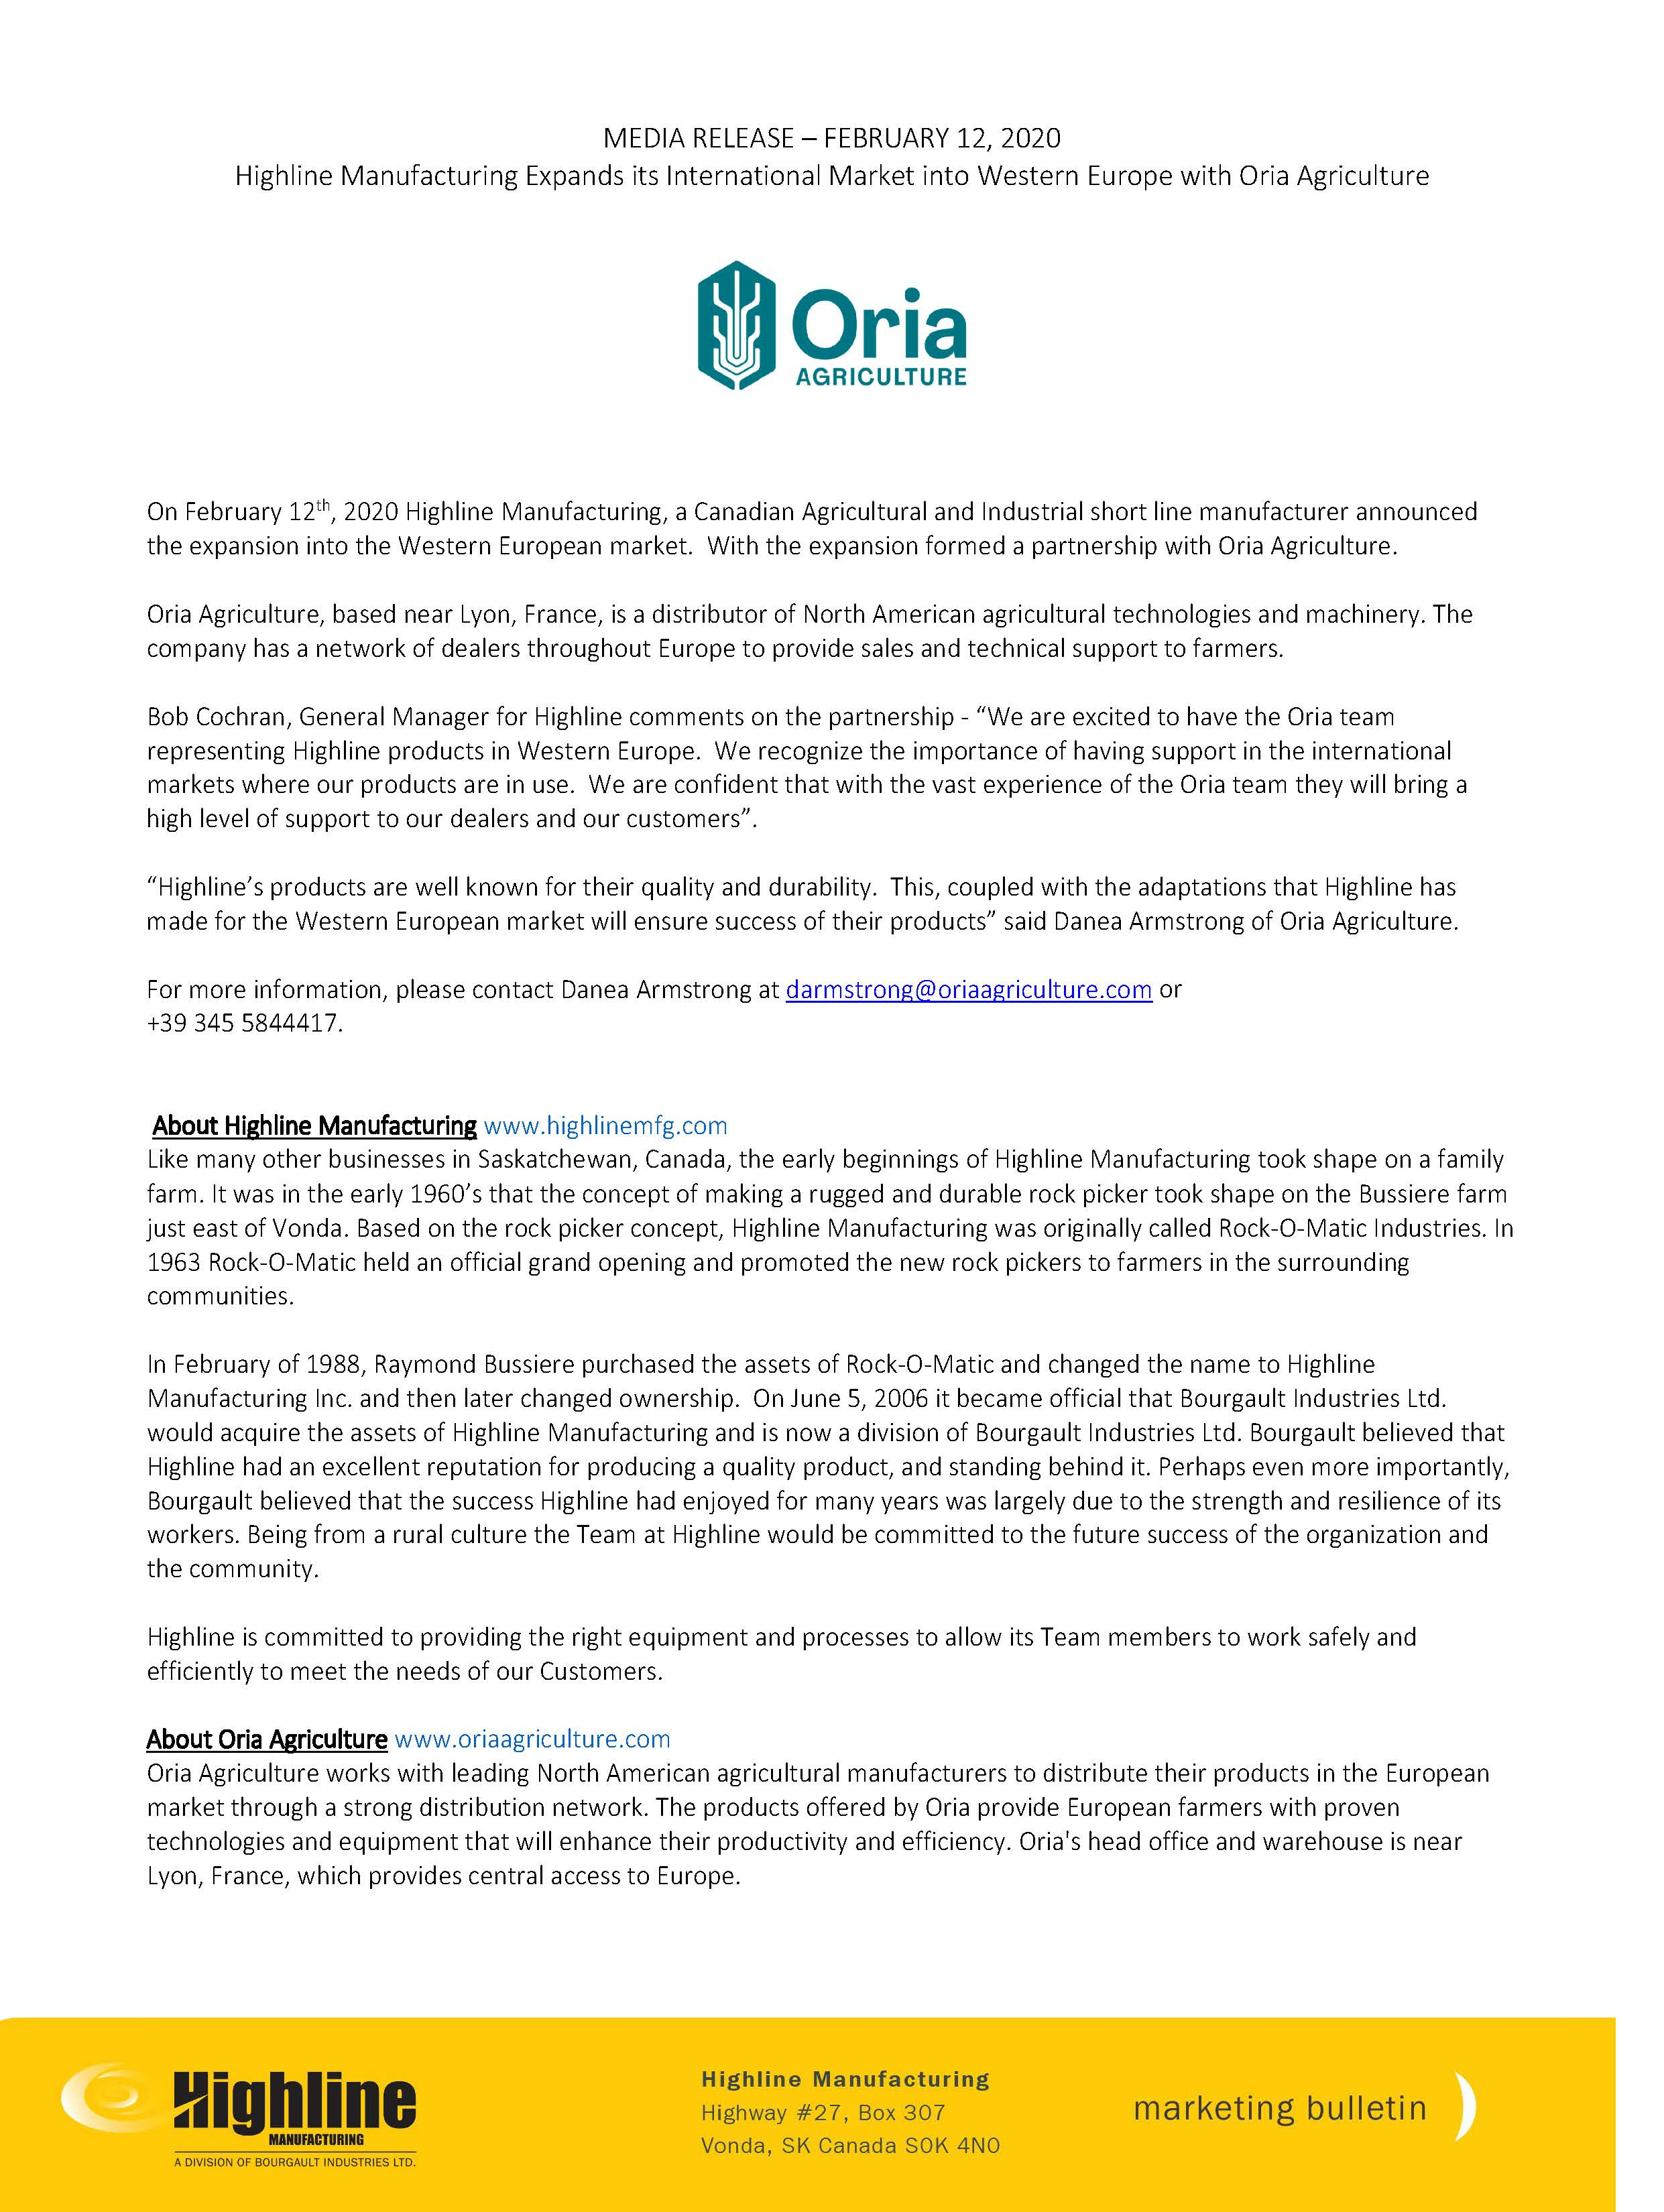 News Release - Highline Manufacturing Expands its International Market into Western Europe with Oria Agriculture